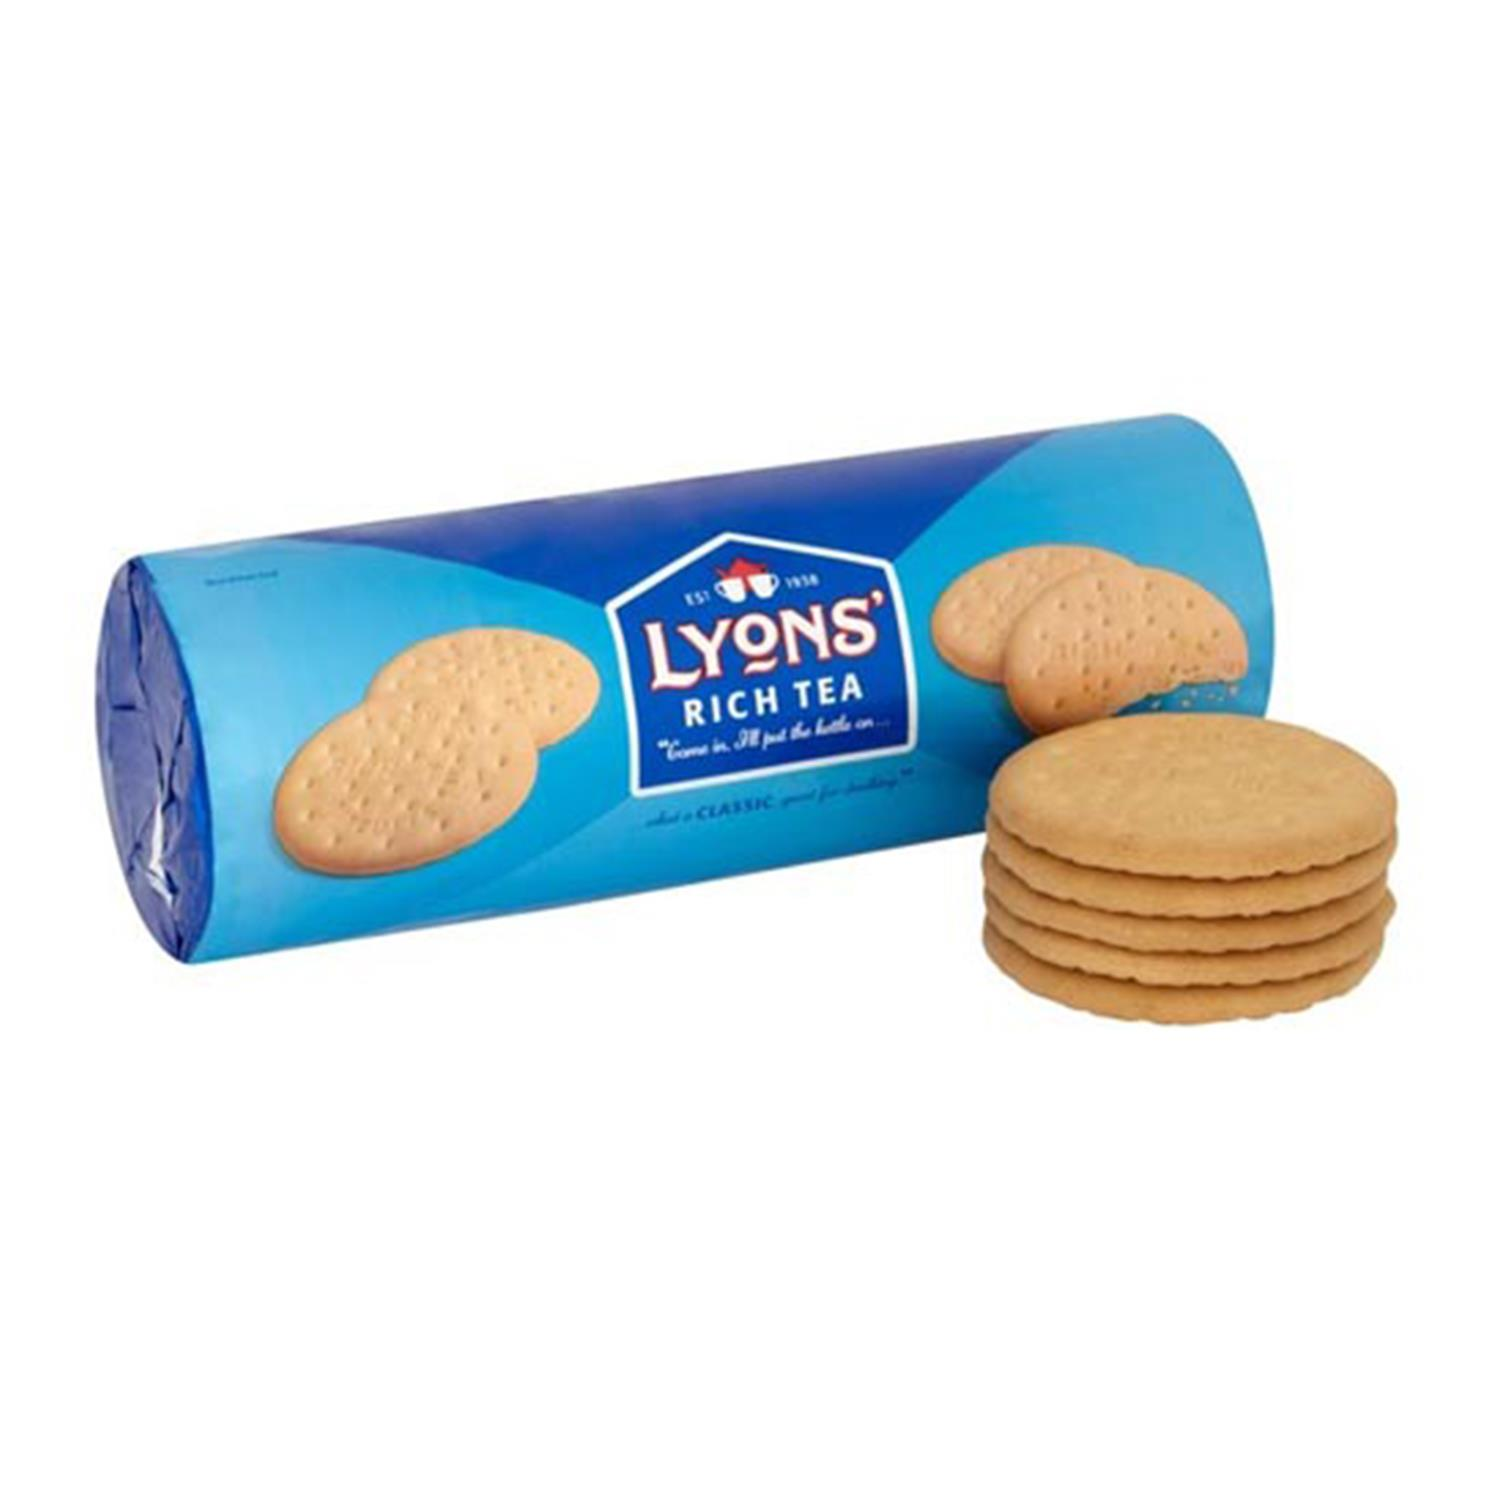 thumbnail 18 - Lyons Rich Tea Biscuits 300g, Great for a morning or afternoon snack